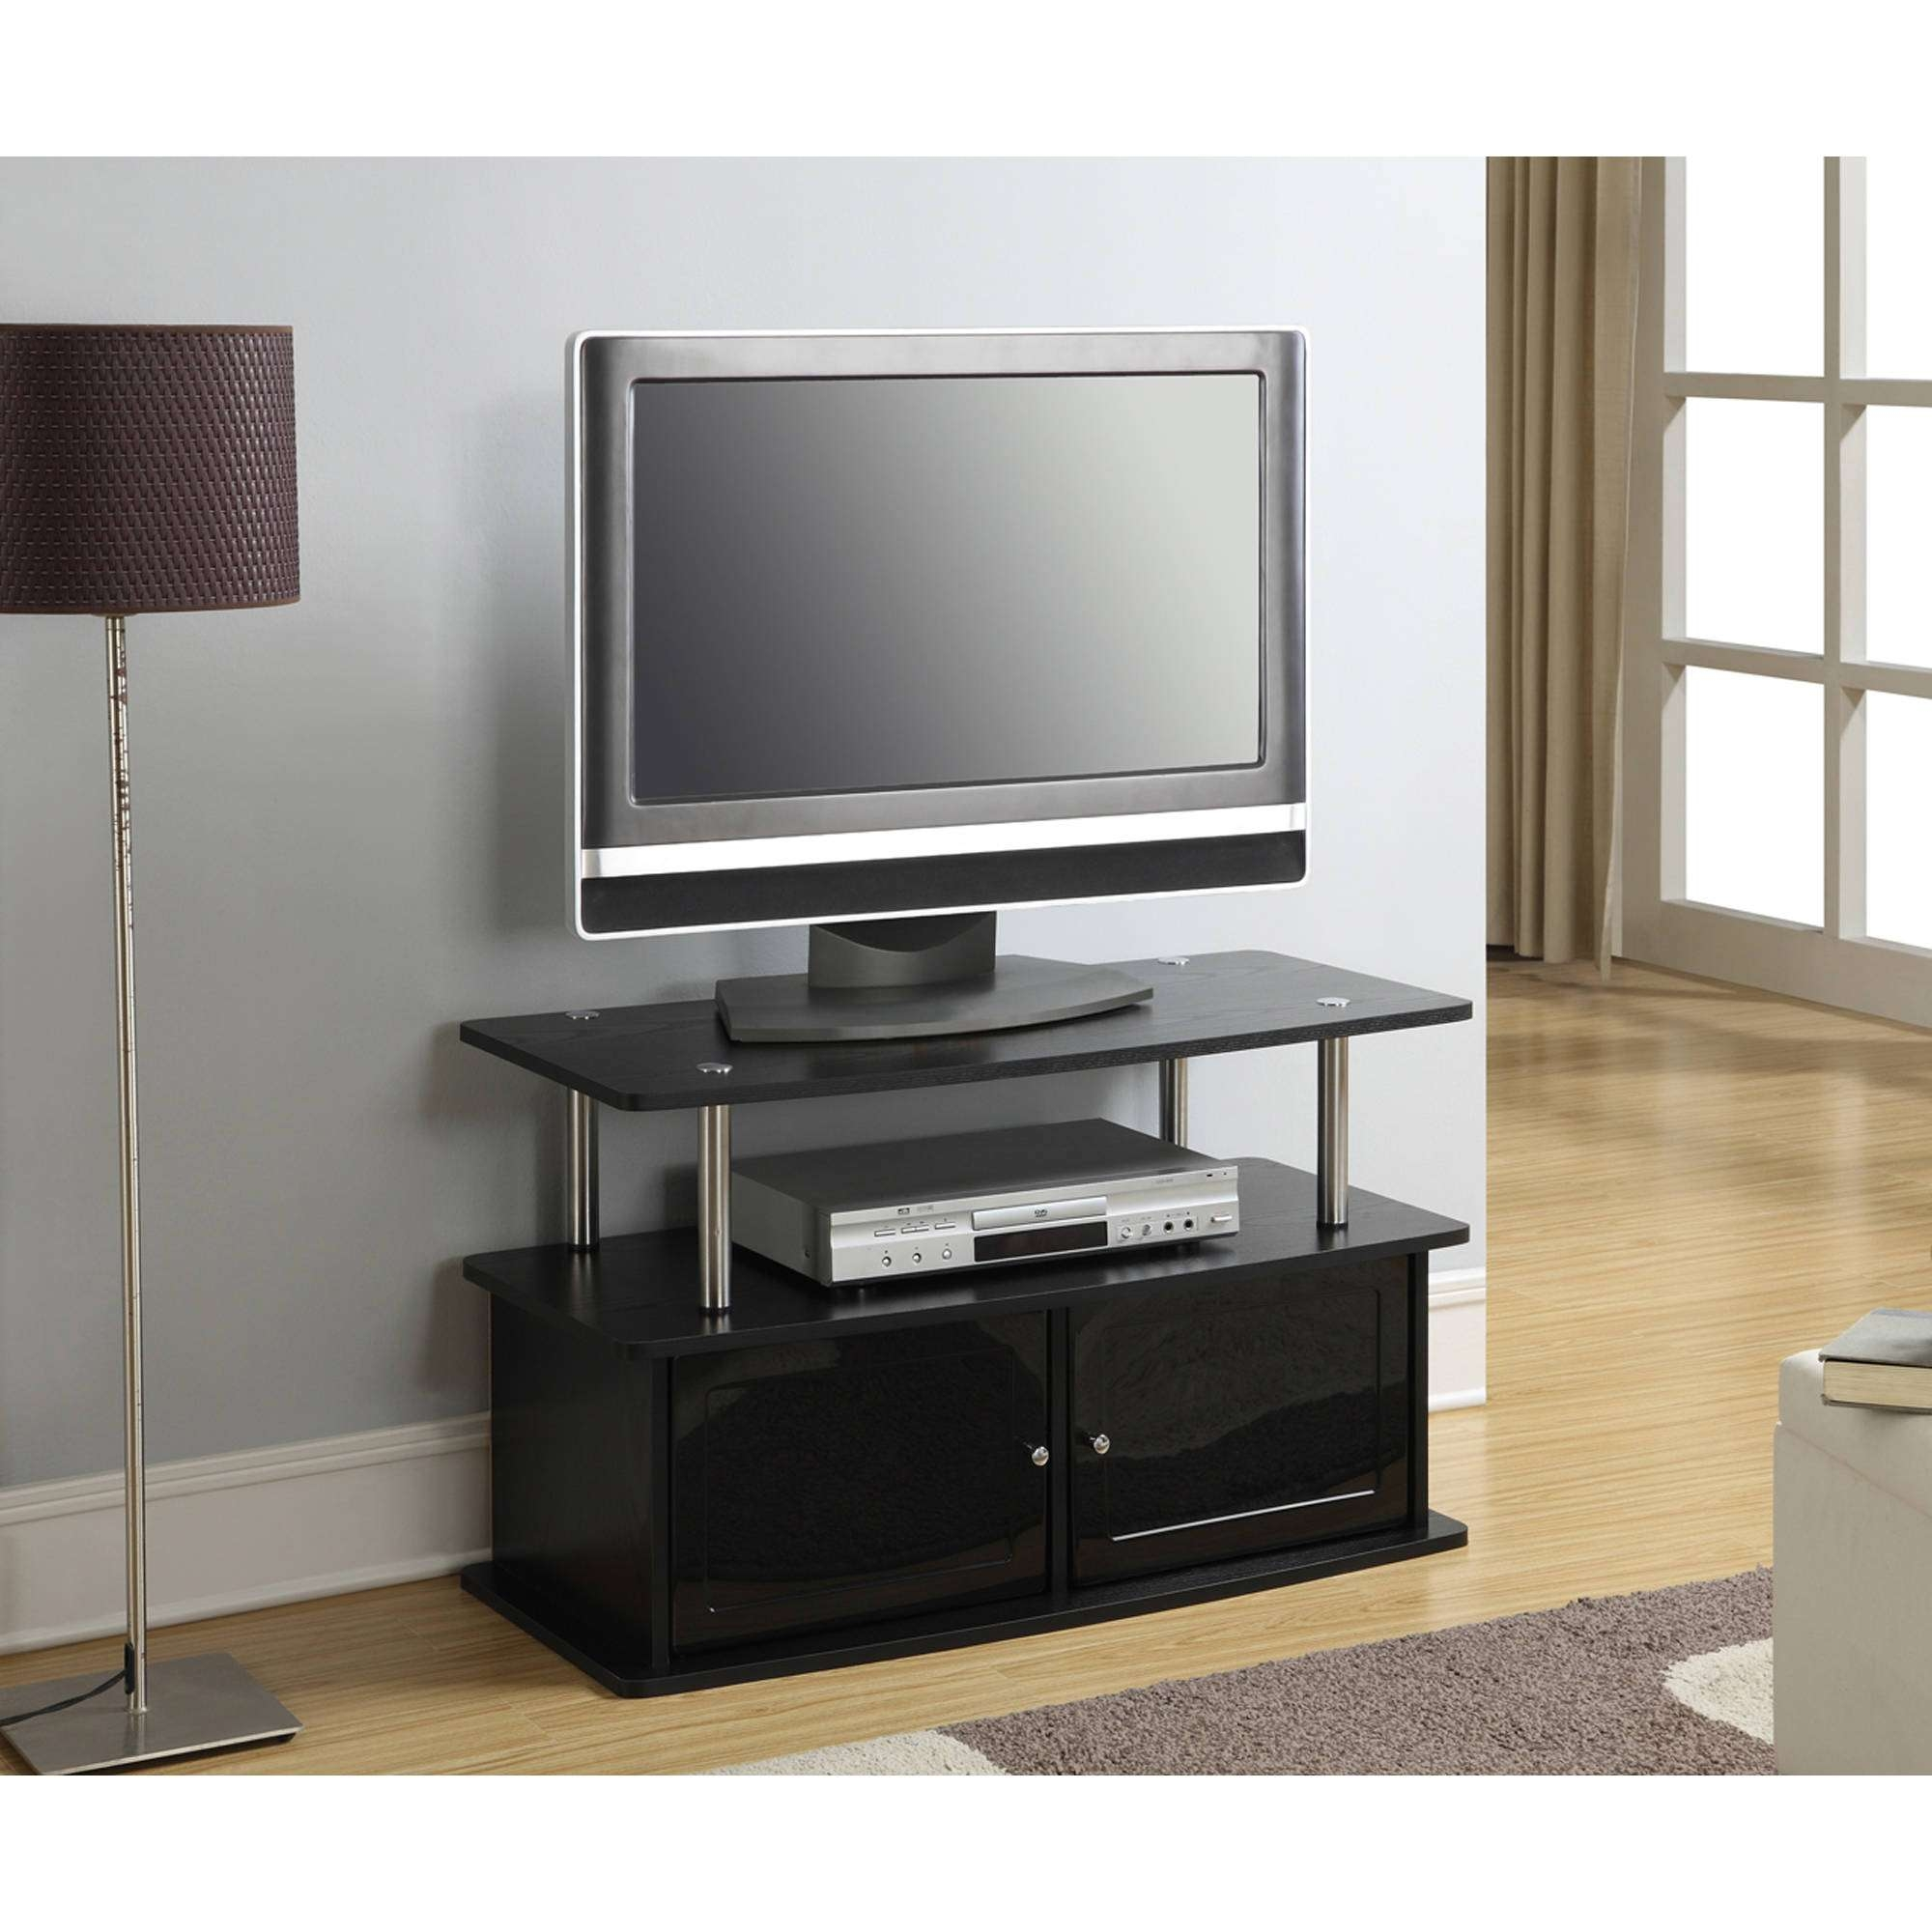 Tv : Cream Color Tv Stands Winsome Cream Coloured Tv Stands Within Cream Color Tv Stands (View 15 of 15)